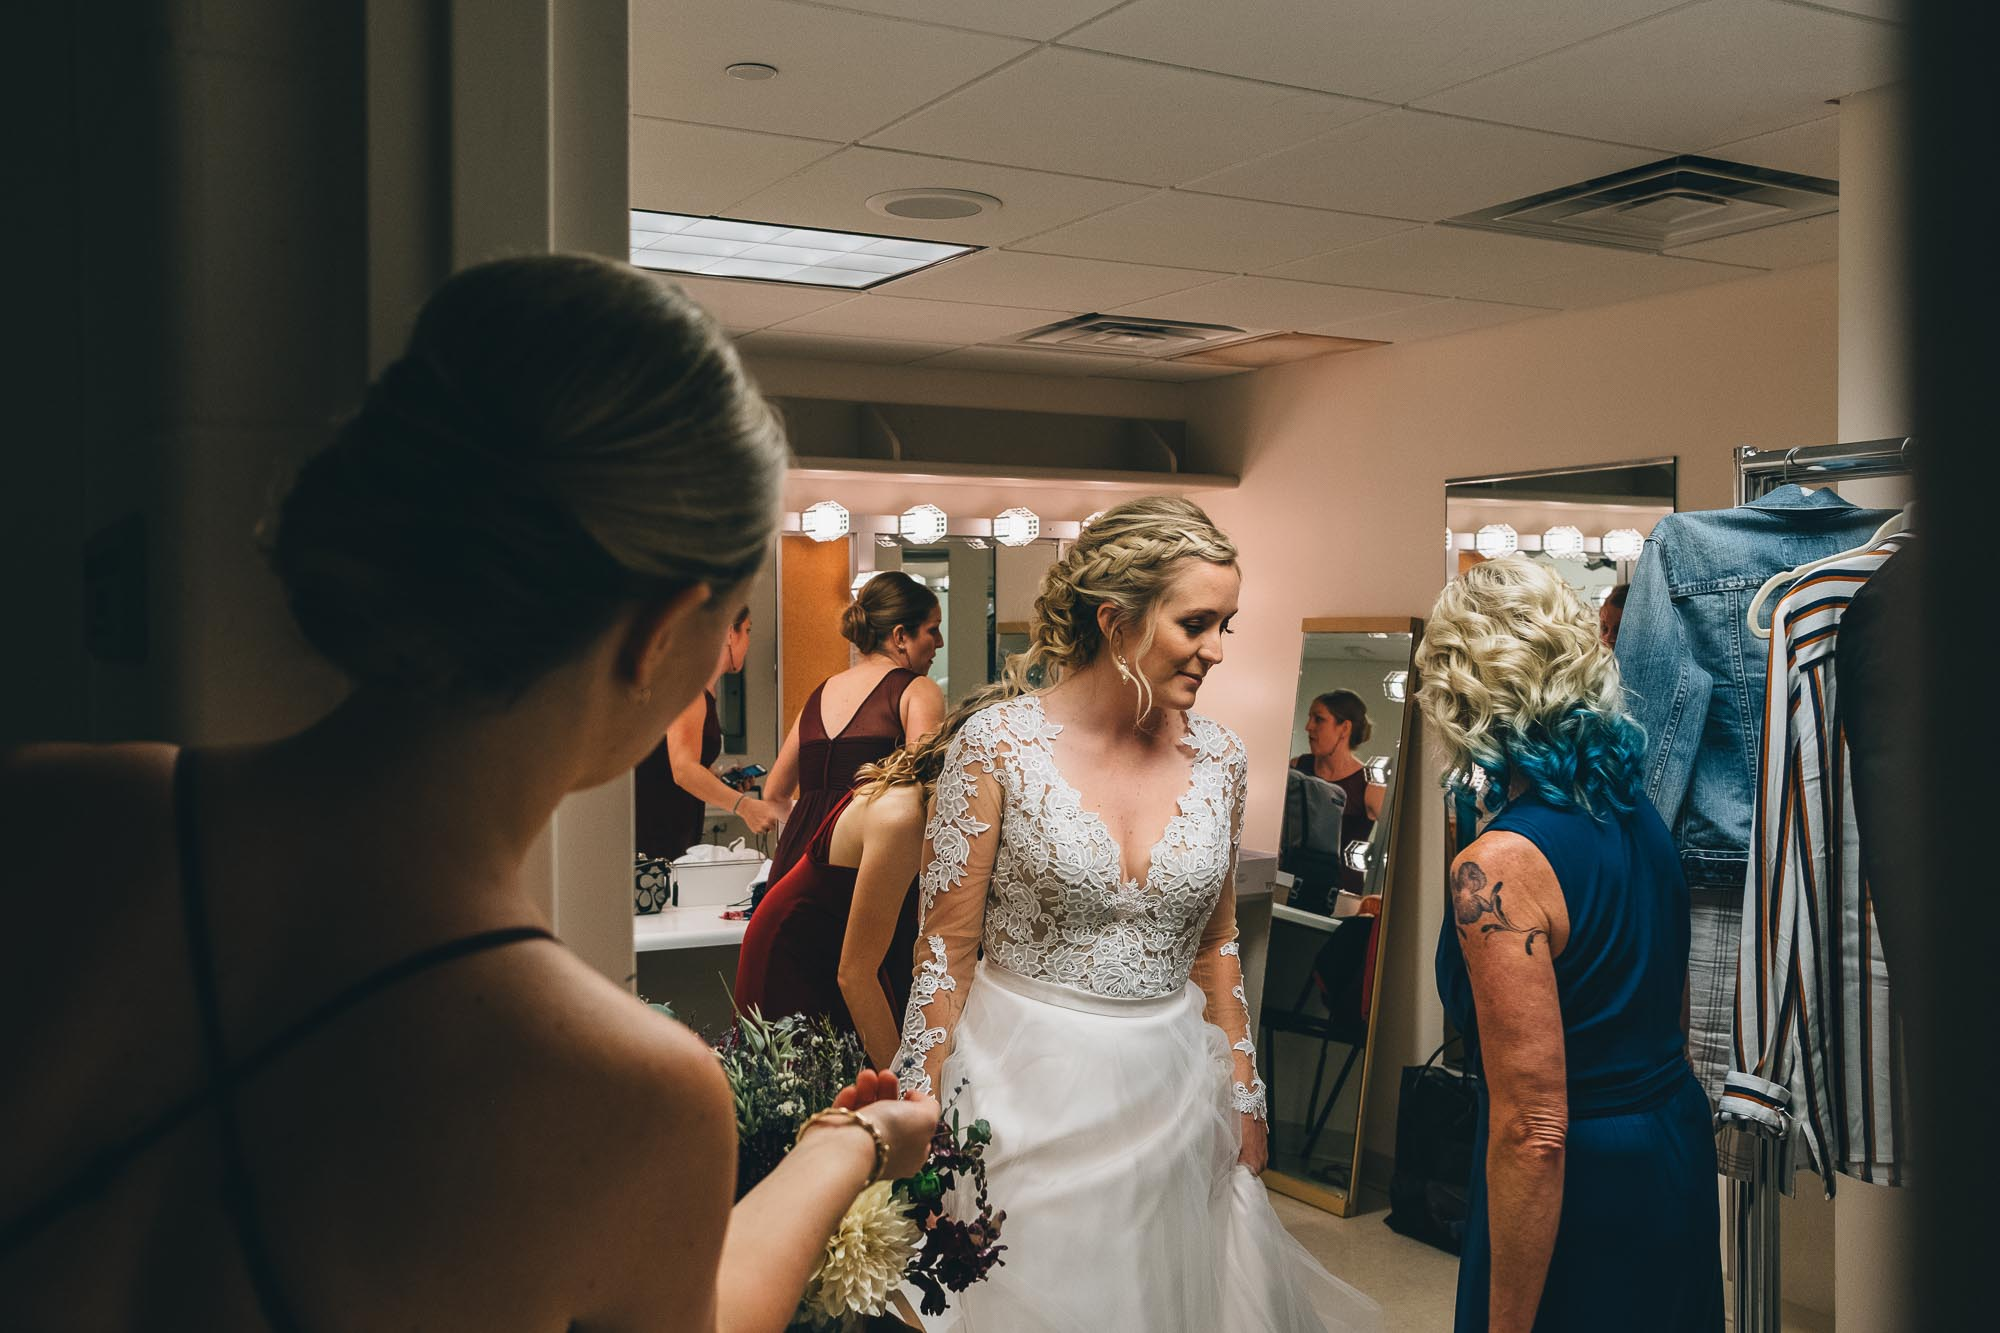 Bride in dressing room of Overture Center is having a private moment before the first look with groom